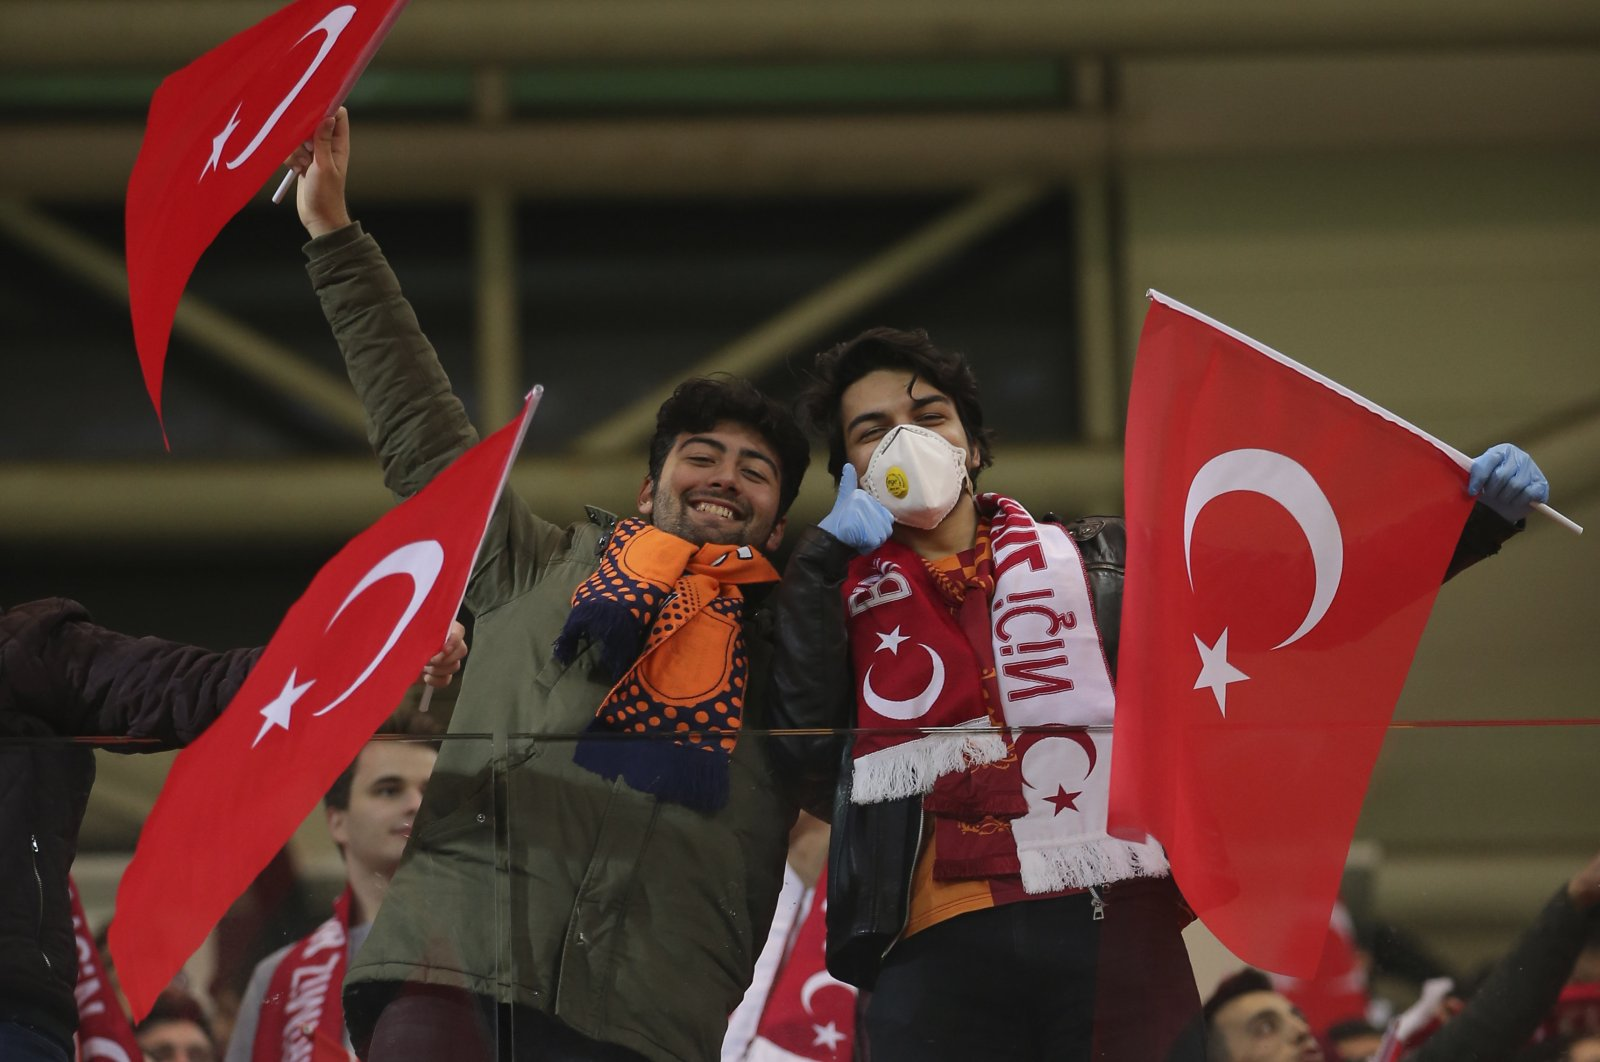 Spectators, some wearing masks because of the coronavirus outbreak, wave Turkish flags prior to a Europa League top 16 first leg football match between Başakşehir and Copenhagen, in Istanbul, Turkey, March 12, 2020. (AP Photo)